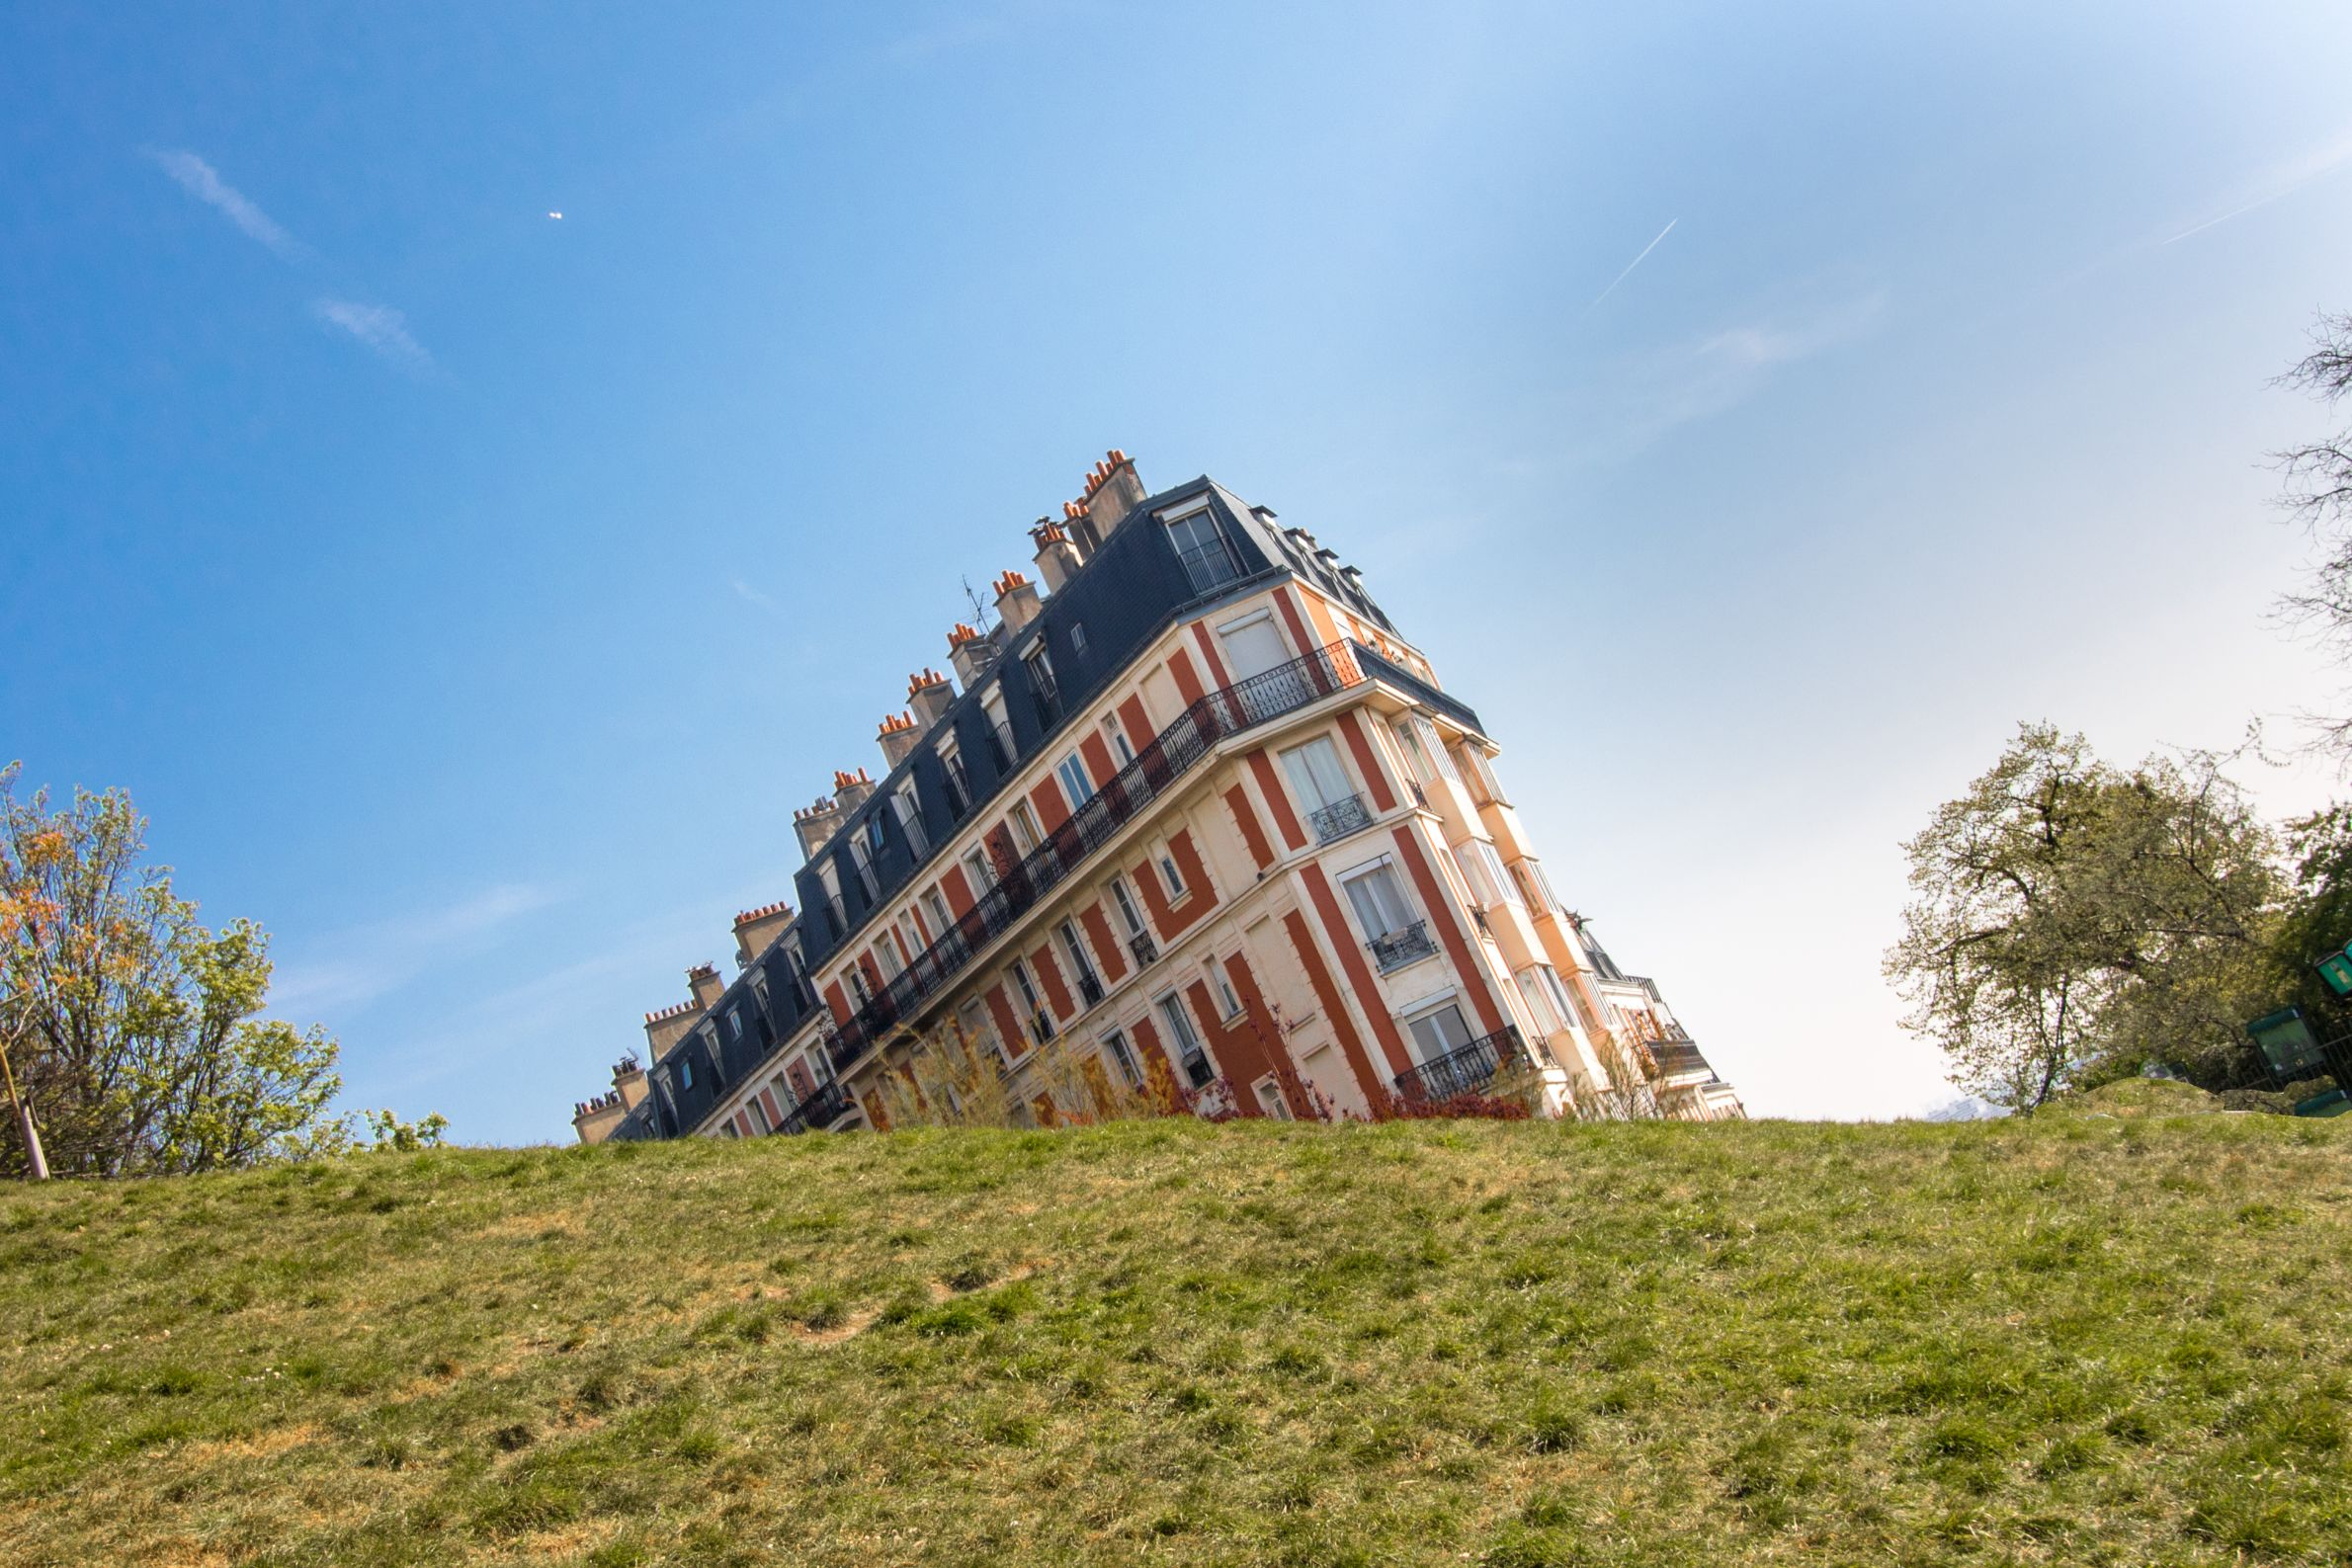 Sinking House of Montmartre in Paris by Sacre-Coeur Basilica. An optical illusion of a building sinking into a grassy bank.